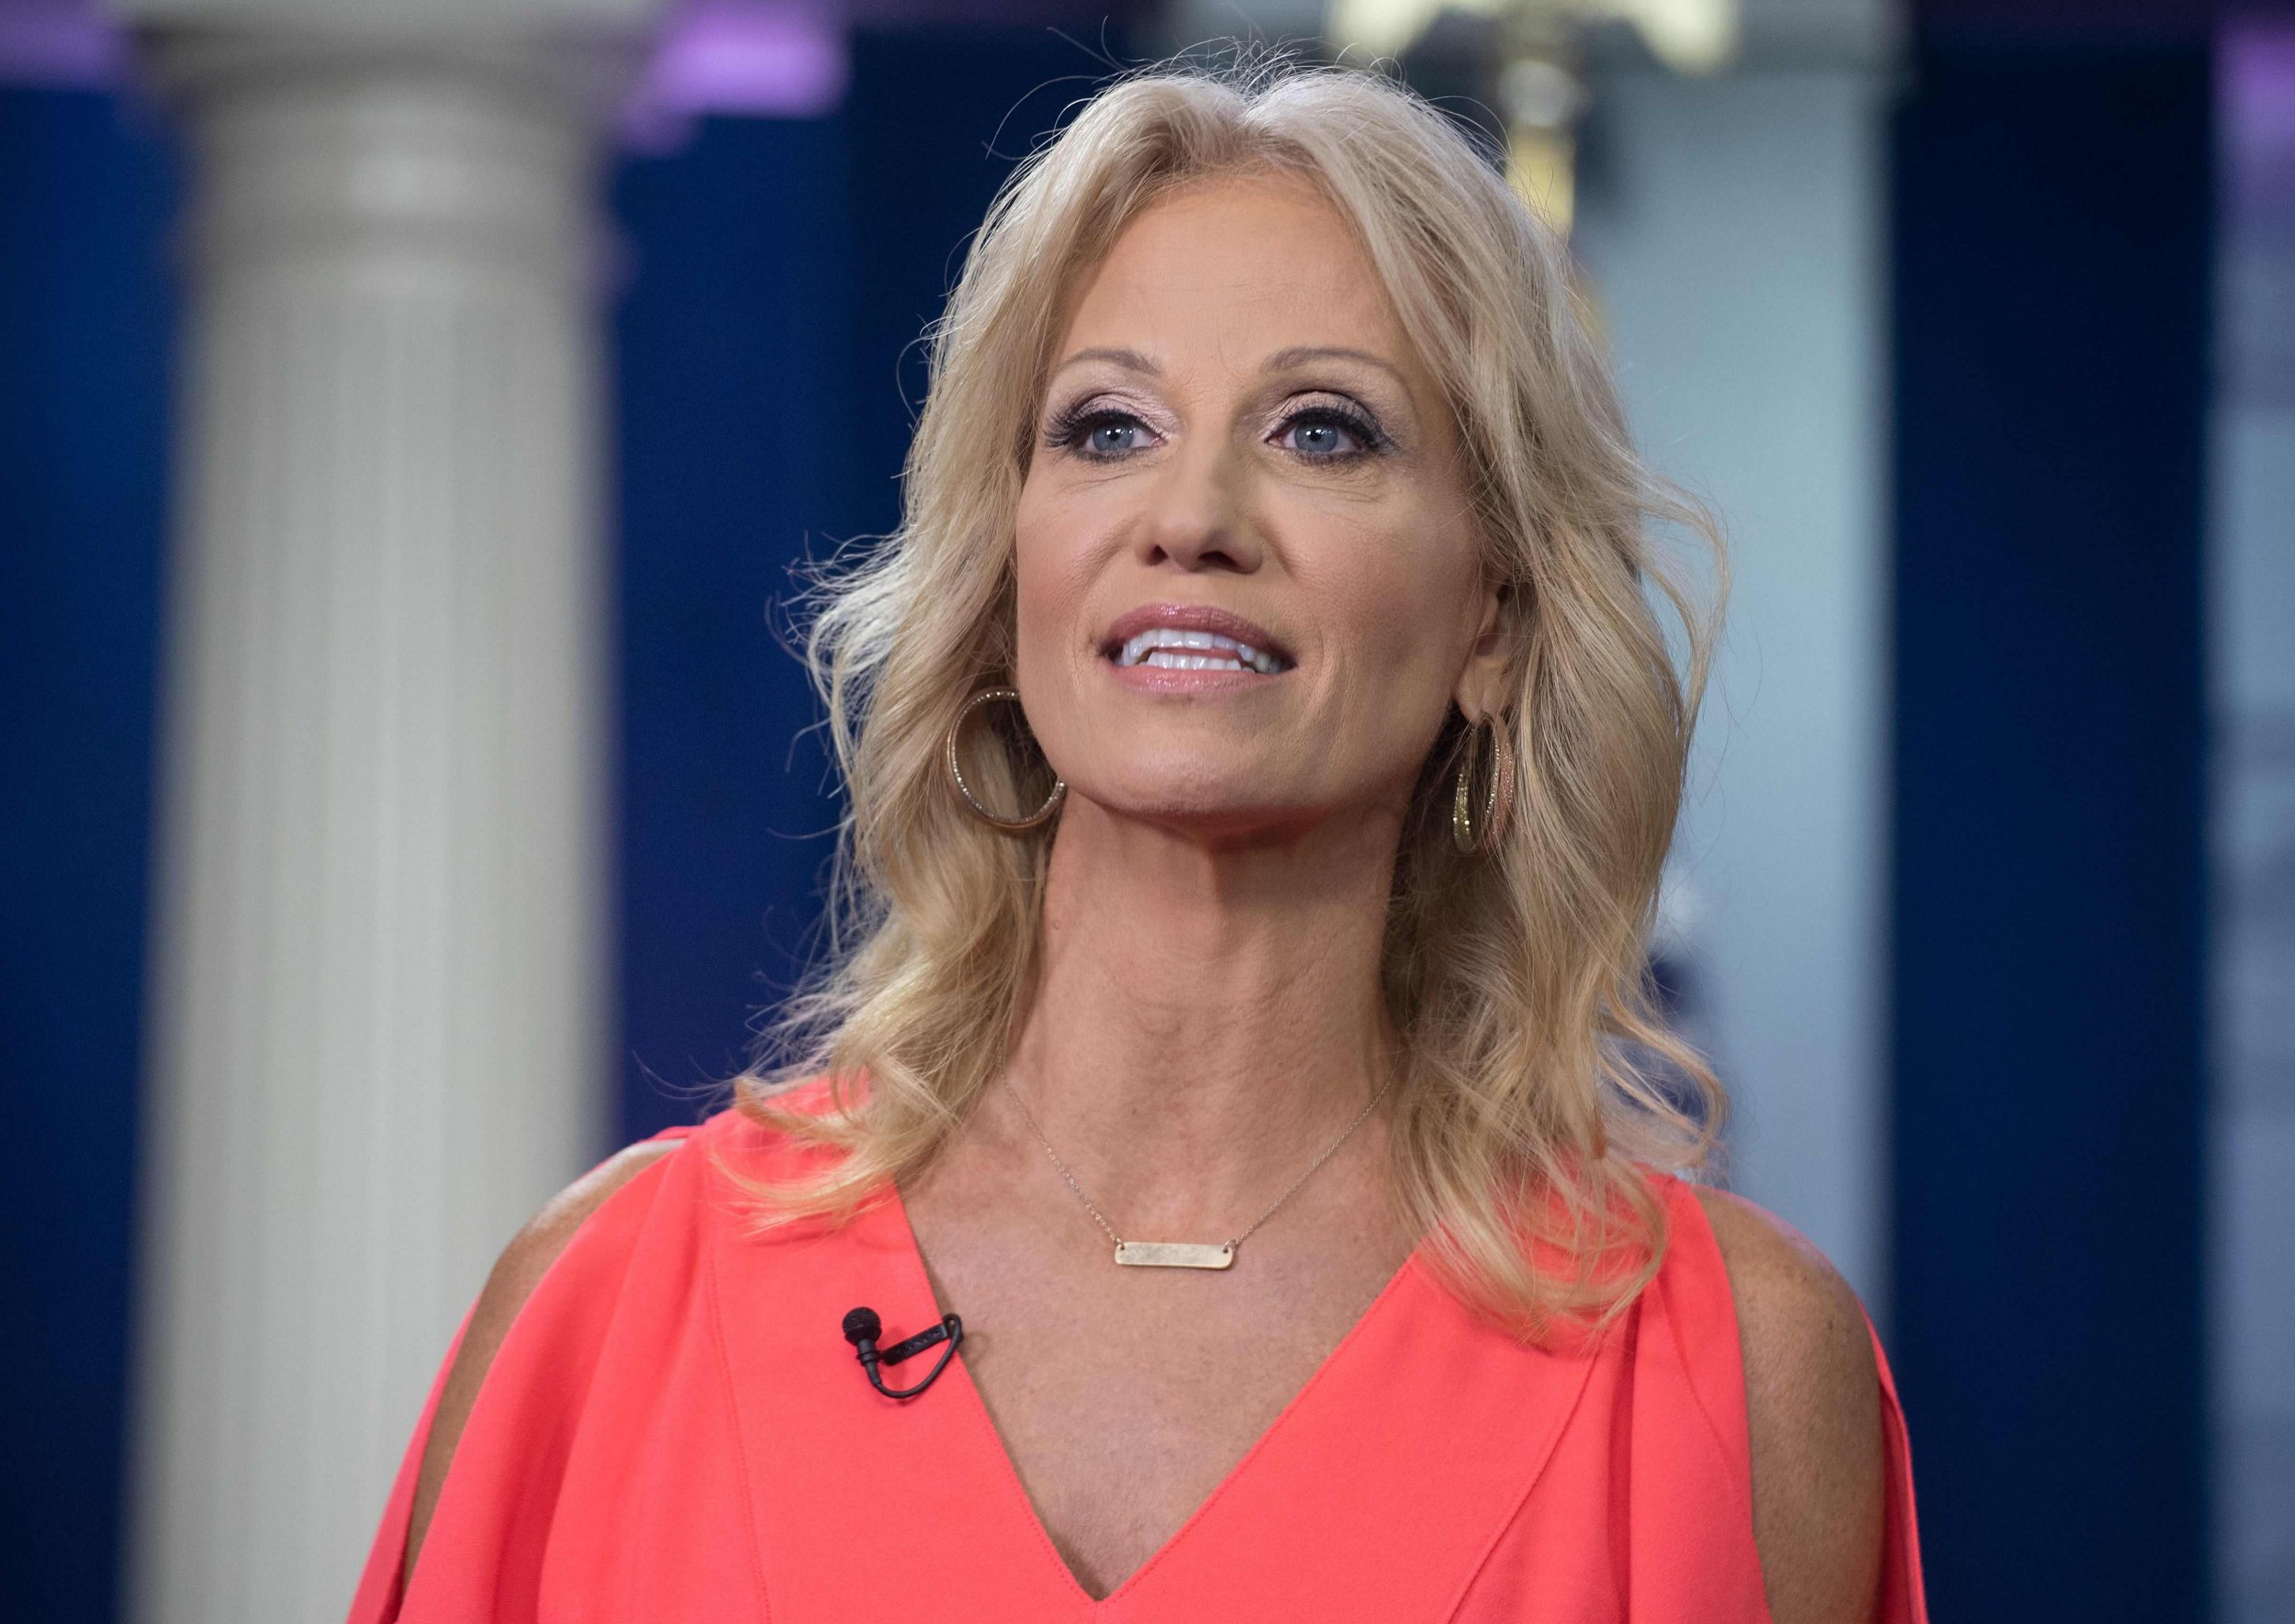 """(FILES) In this file photo taken on August 21, 2018 Kellyanne Conway, Counselor to US President Donald Trump, speaks to Fox News from the briefing room at the White House in Washington, DC. - Kellyanne Conway, a senior adviser to US President Donald Trump and one of the most public faces of his administration, revealed on September 30, 2018 that she has been a victim of sexual assault.Conway made the disclosure to CNN's Jake Tapper on his State of the Union news show, while defending Trump's embattled Supreme Court nominee Brett Kavanaugh.""""I feel very empathetic, frankly, towards victims of sexual assault and sexual harassment and rape,"""" she said, before pausing to clear her throat. (Photo by Nicholas Kamm / AFP)NICHOLAS KAMM/AFP/Getty Images"""